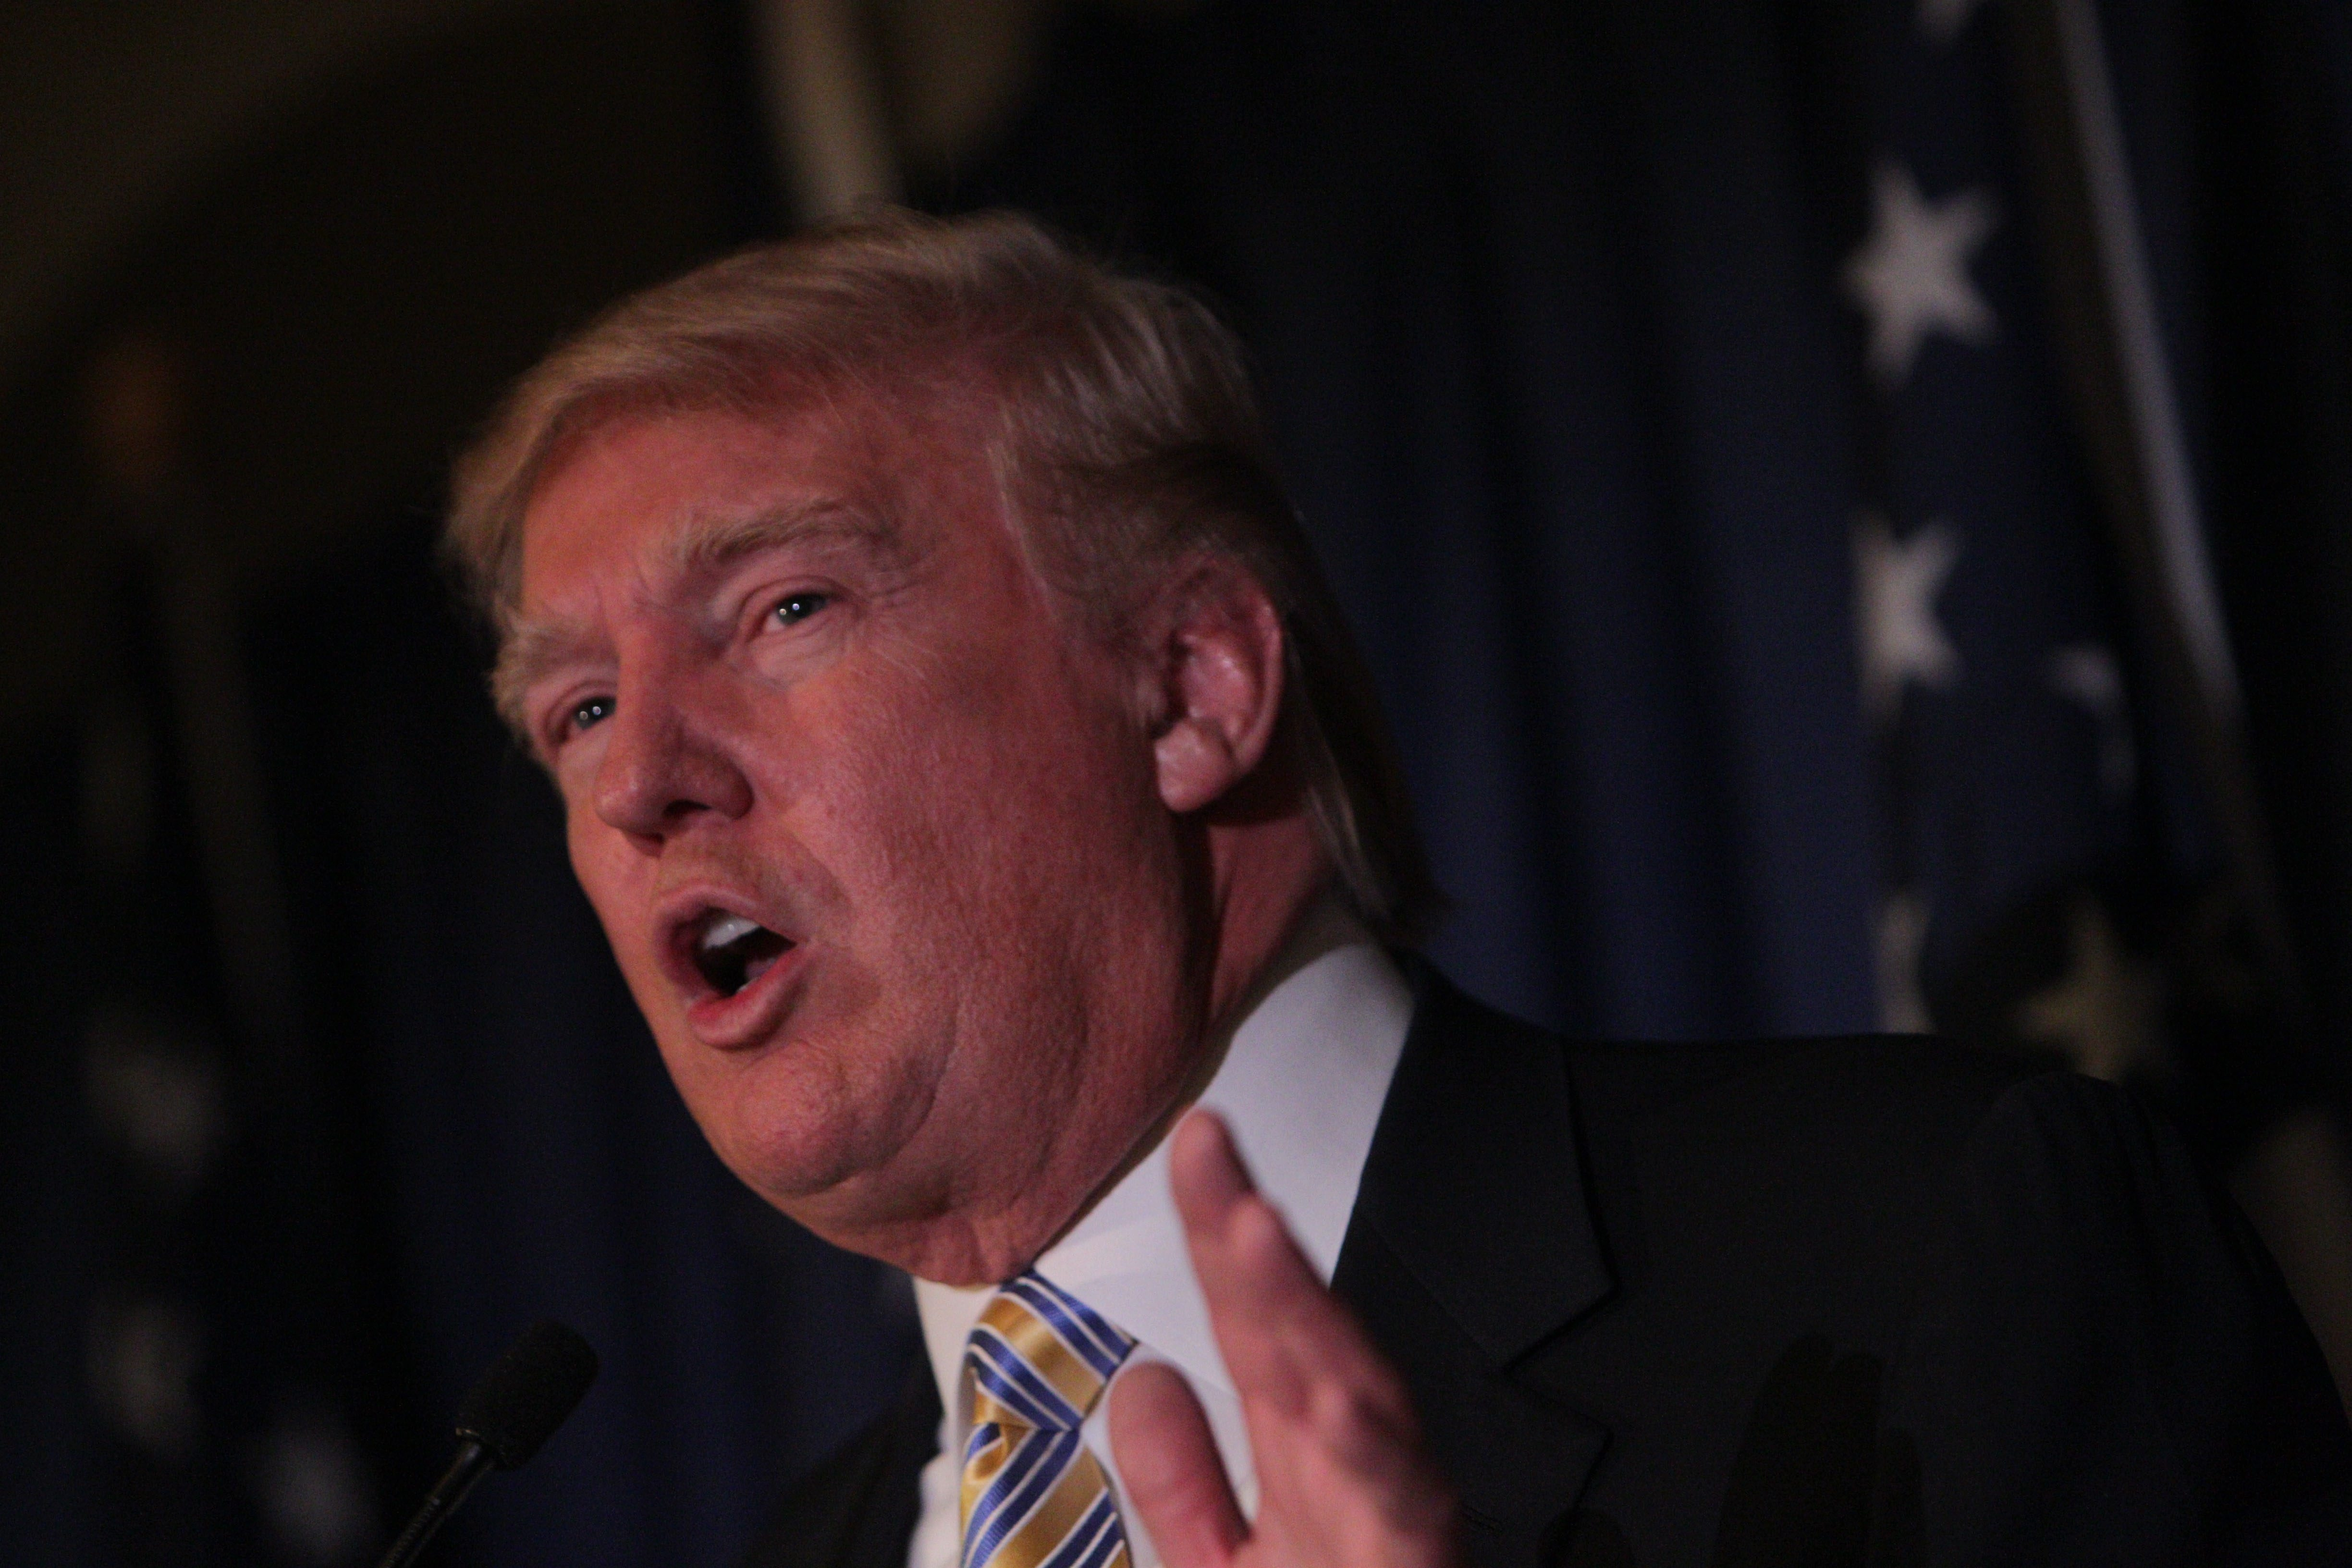 Donald Trump, shown at his appearance in January as the guest of honor and keynote speaker at the Erie County Republican Committee's Lincoln Leadership Reception, has indicated his interest in buying the Buffalo Bills.